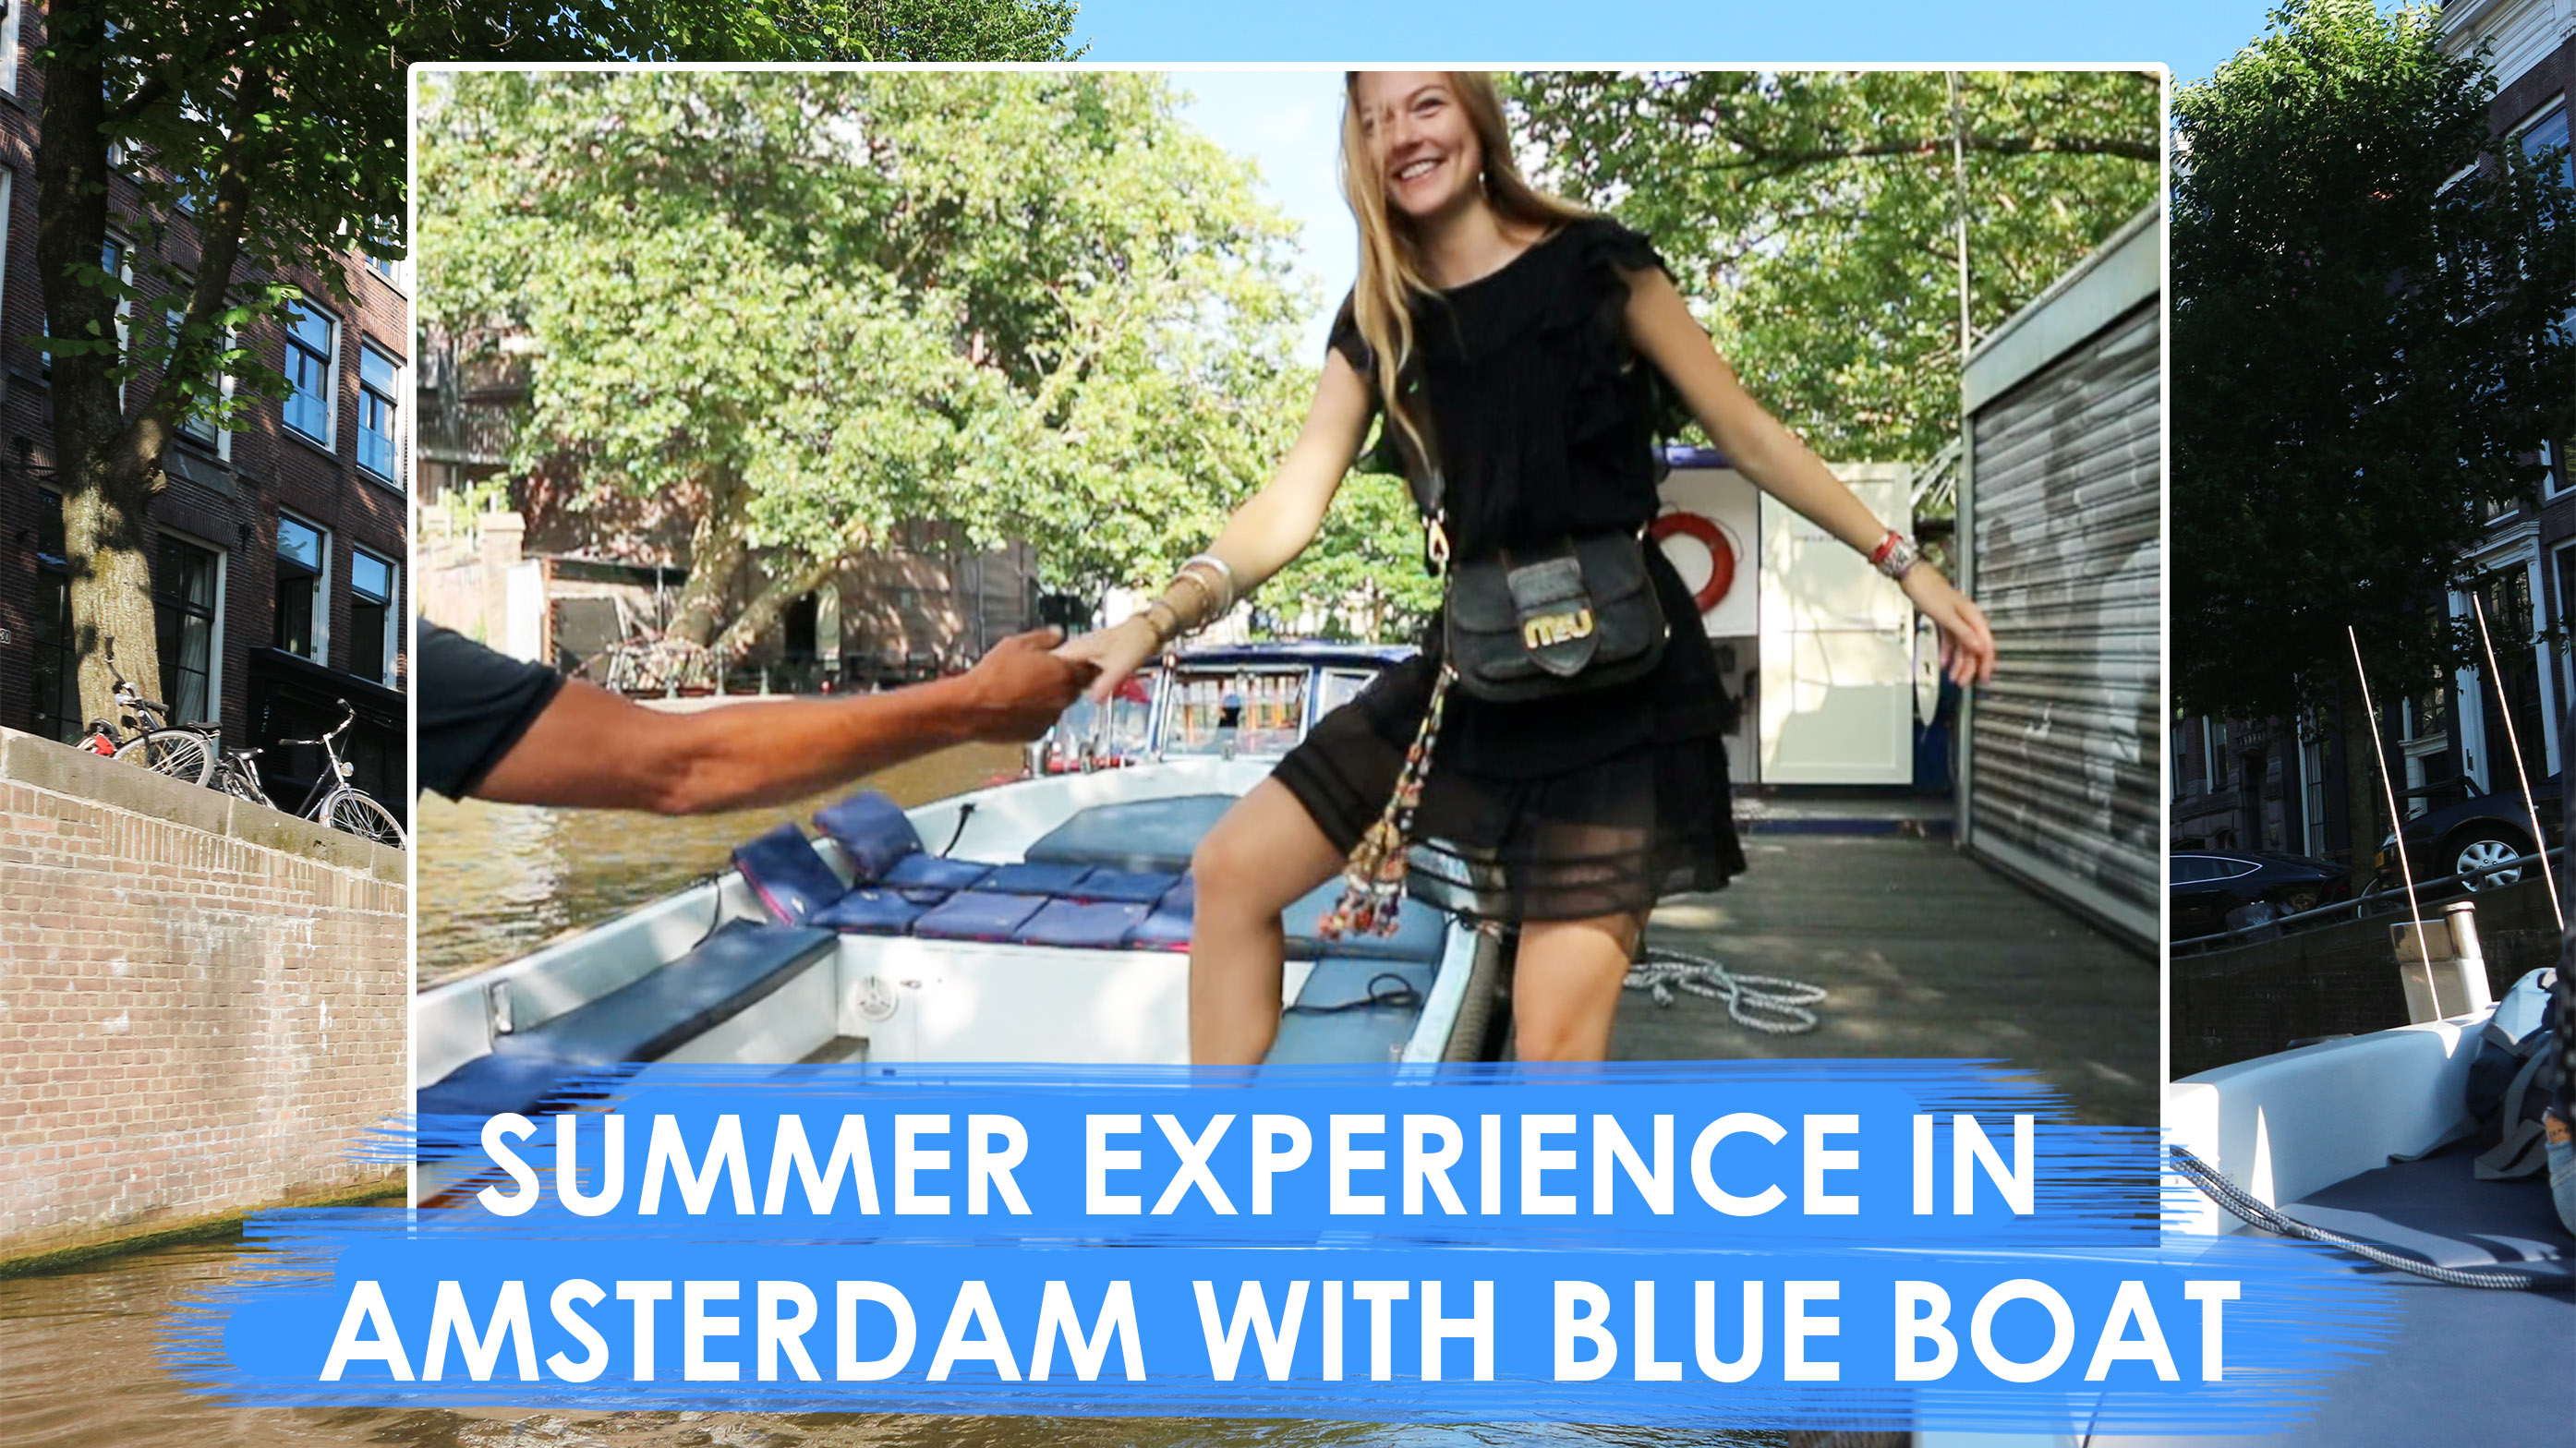 SUMMER EXPERIENCE IN AMSTERDAM